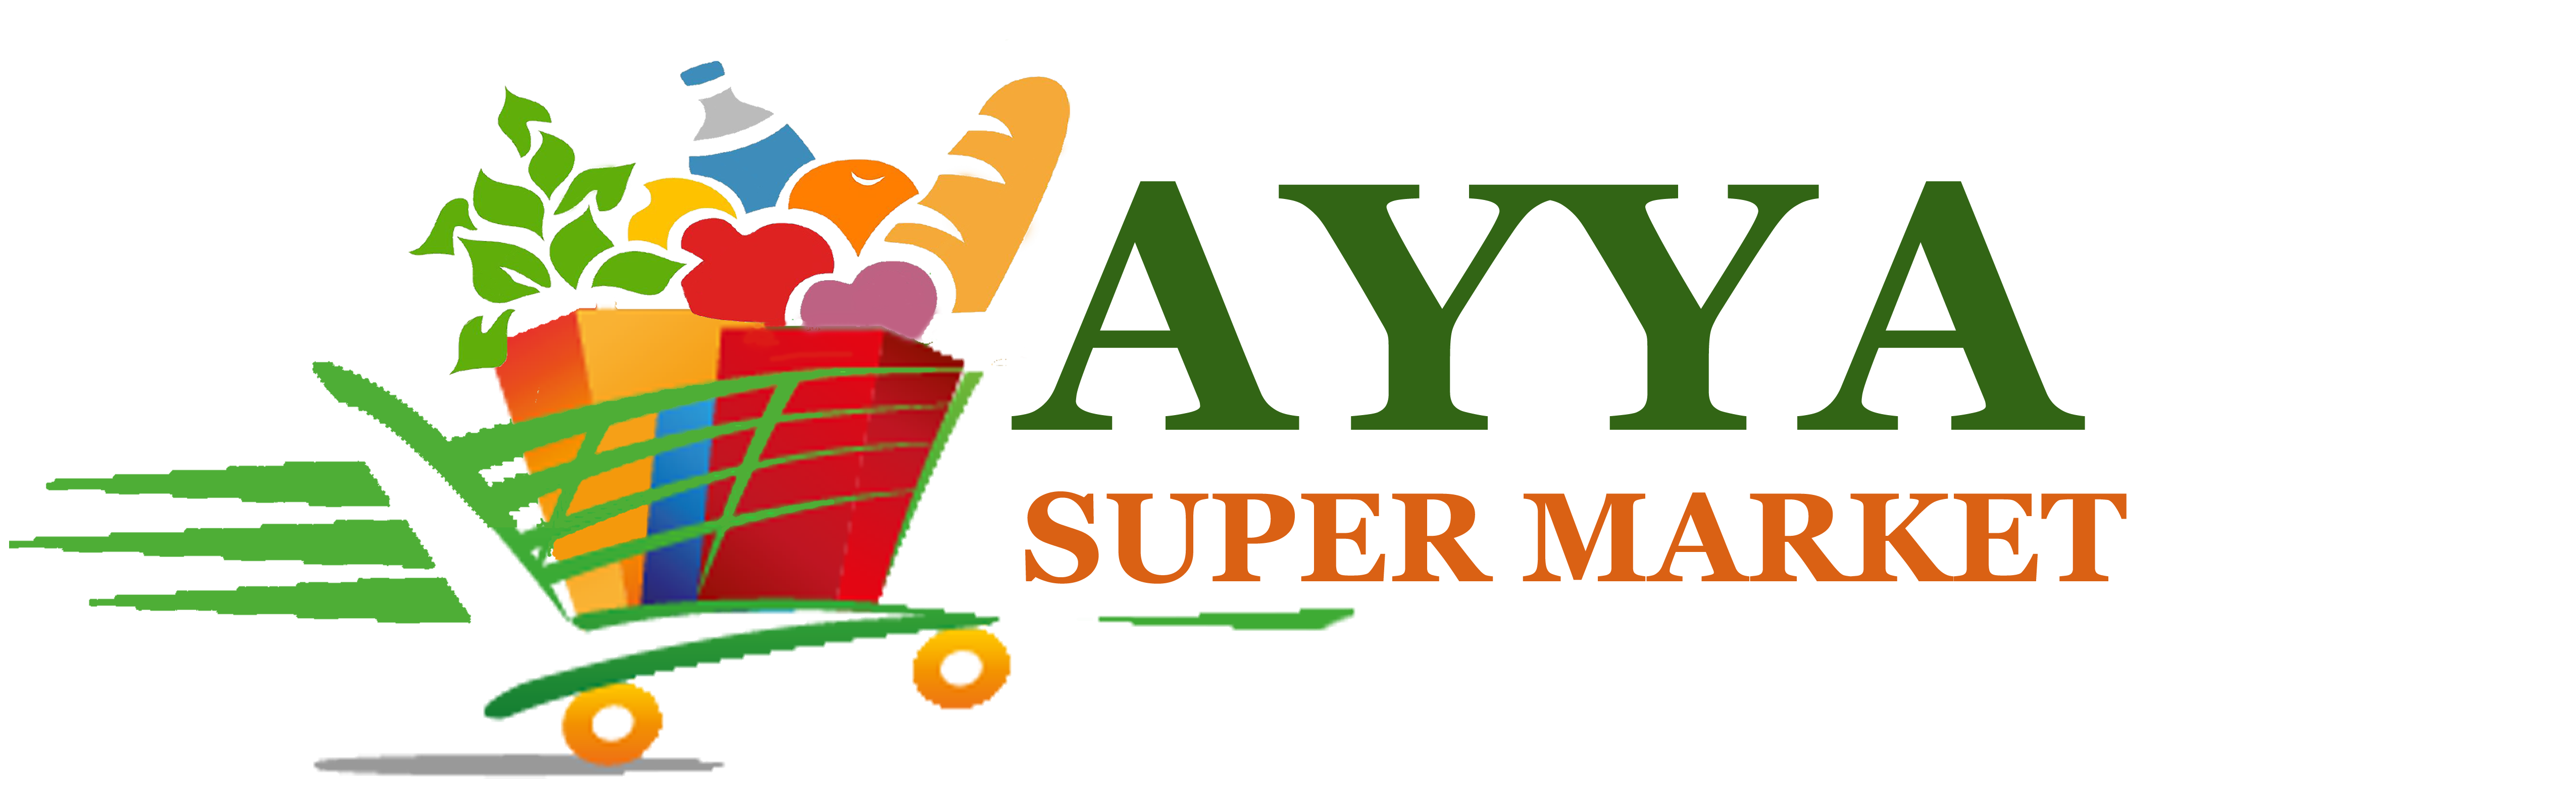 png freeuse stock Supermarket clipart super market. Ayya high quality grocery